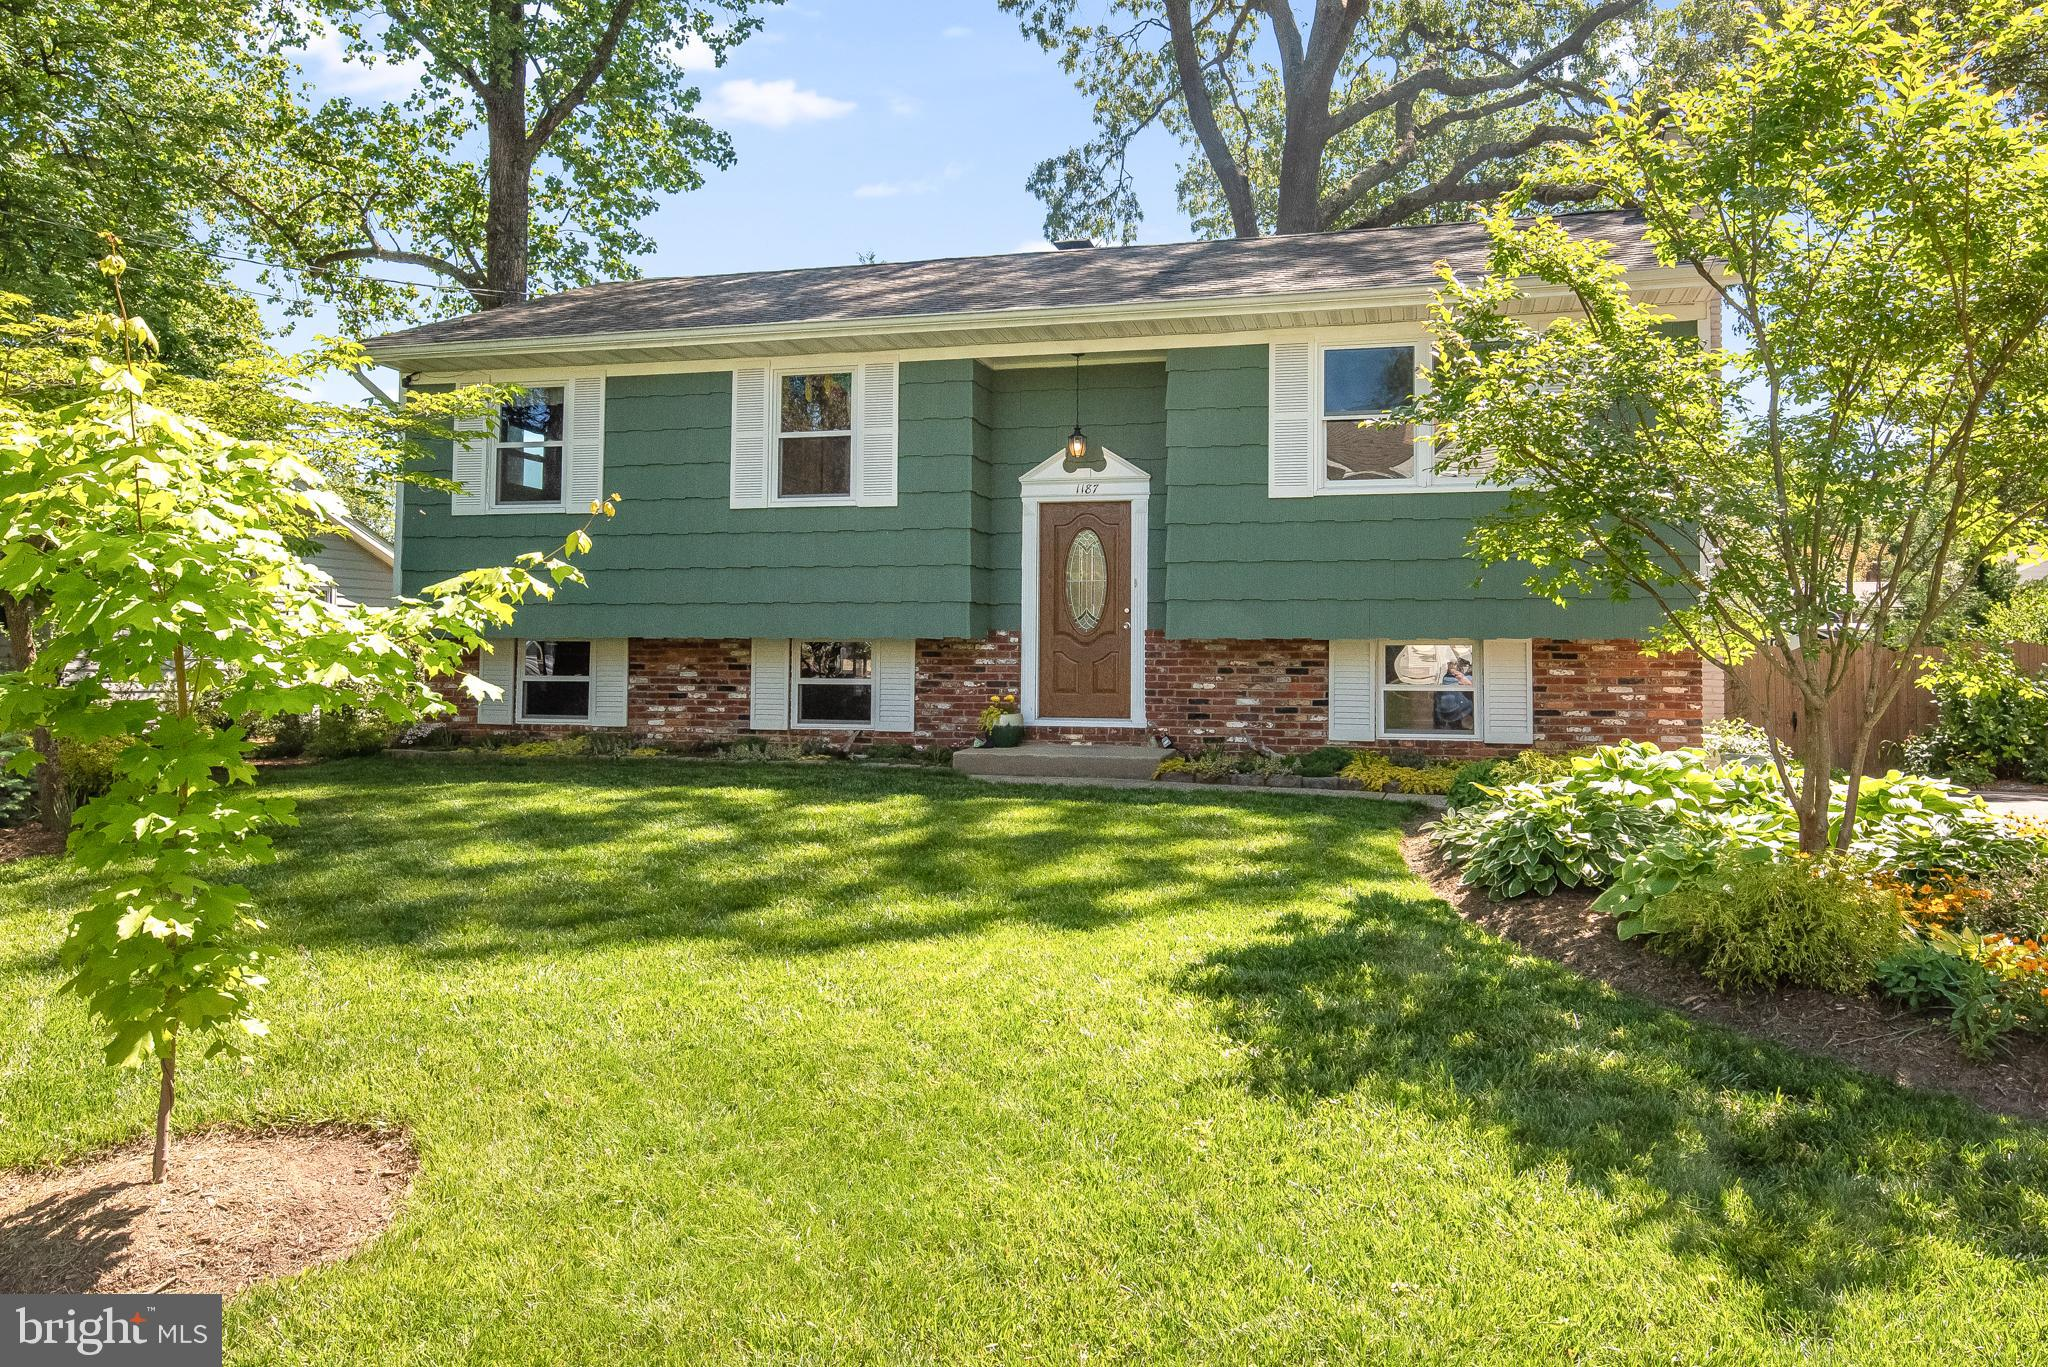 This is one very pretty yard front and back manicured and meticulous. The updates are throughout the